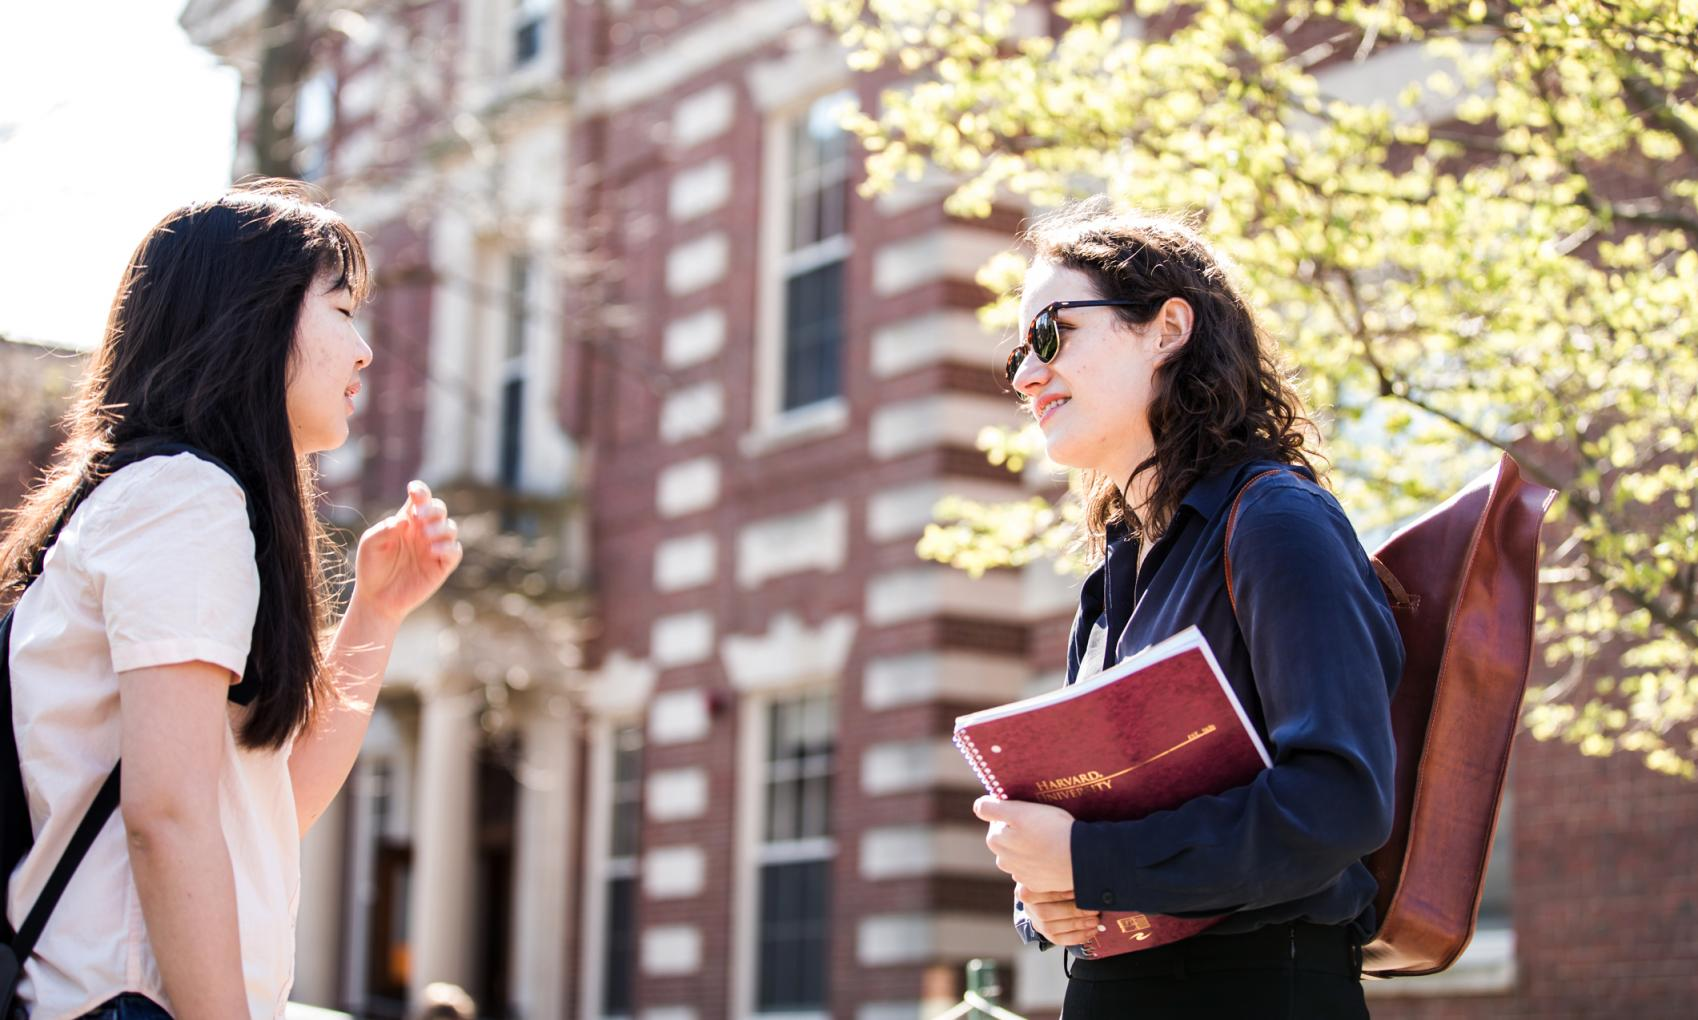 Students-exchange-ideas-in-Harvard-Yard